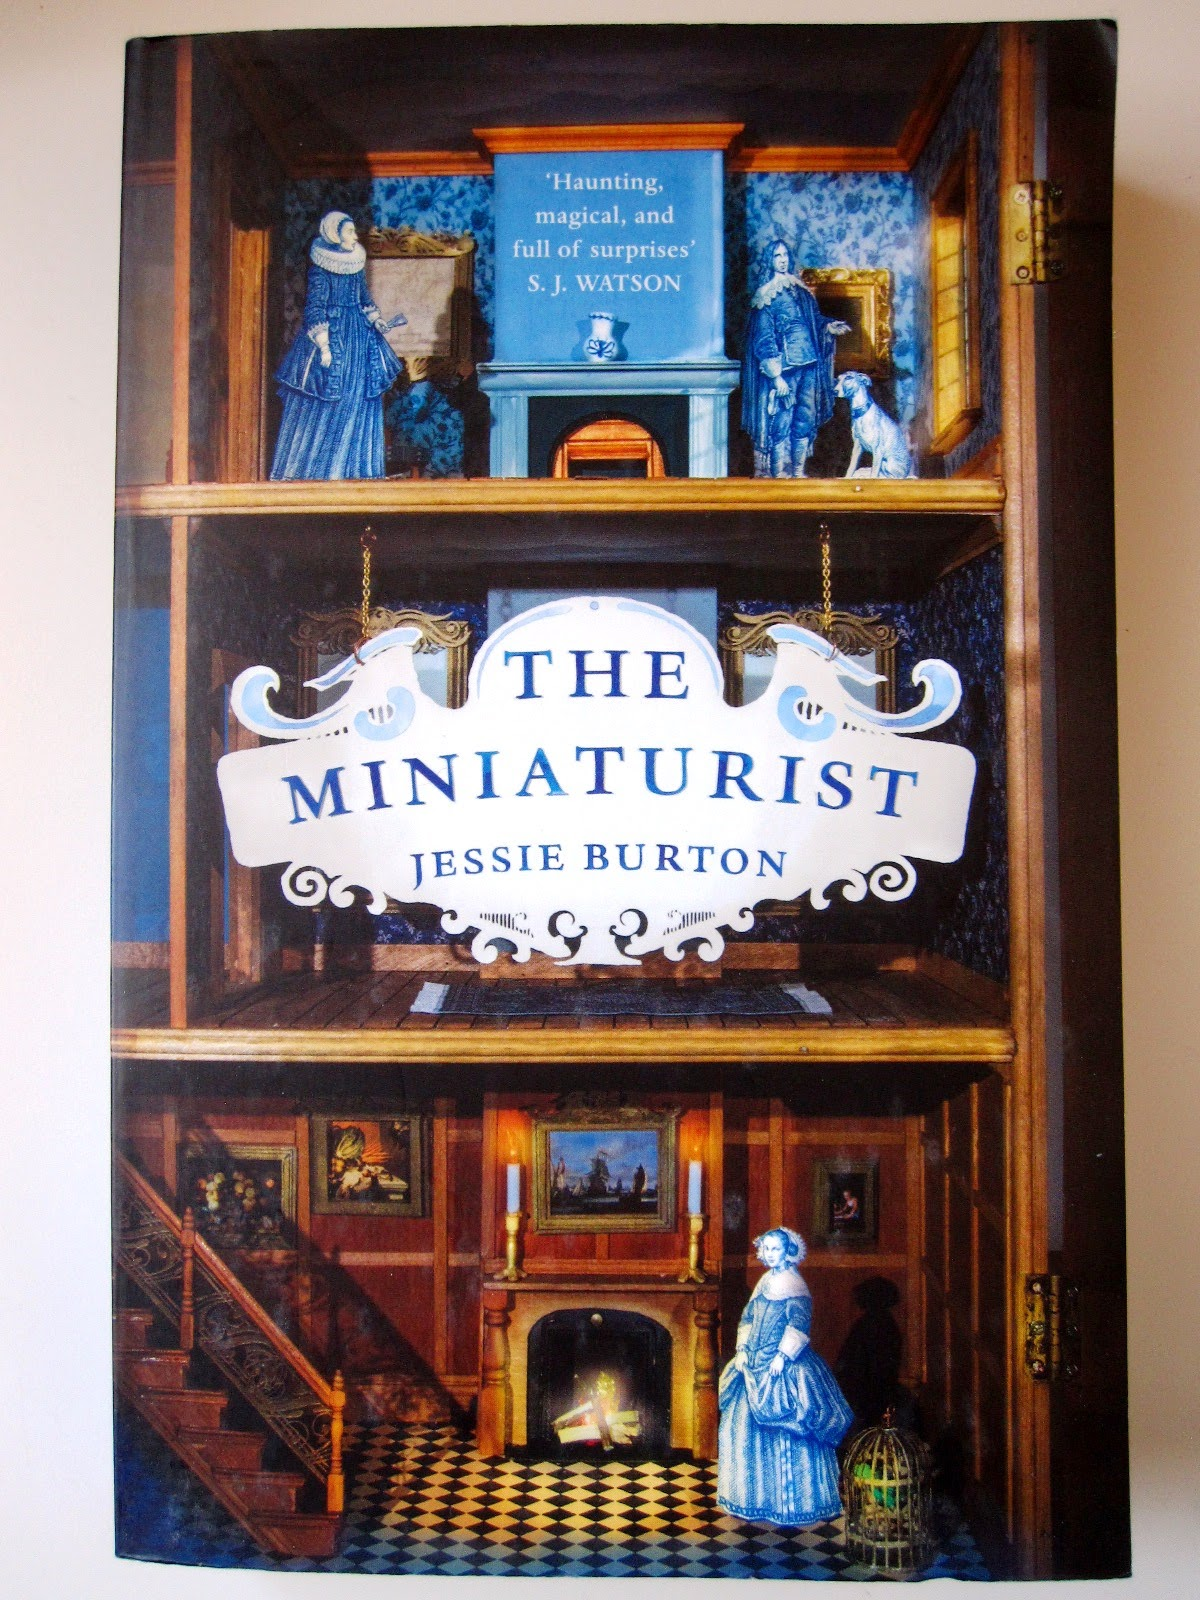 Front cover of the book The Miniaturist by Jessie Burton,